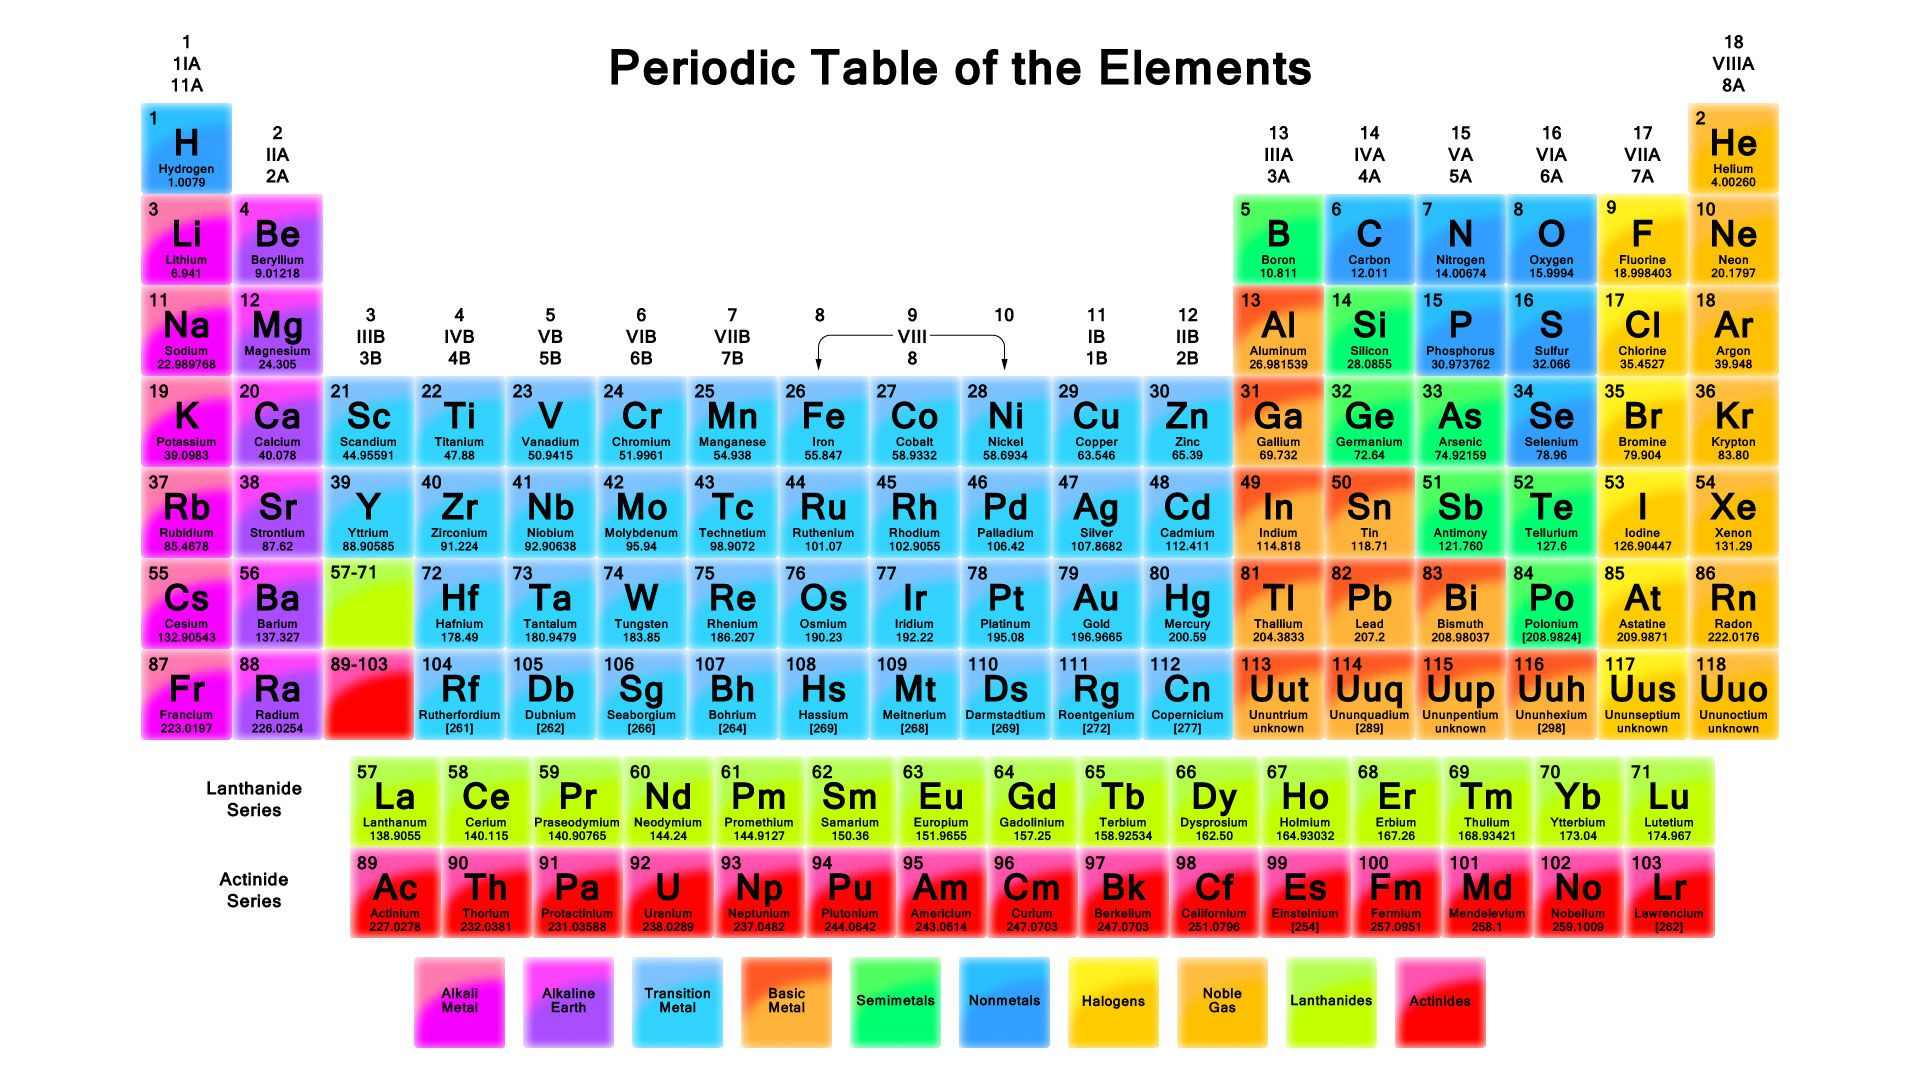 Periodic table study guide introduction history learn how to use a periodic table gamestrikefo Choice Image